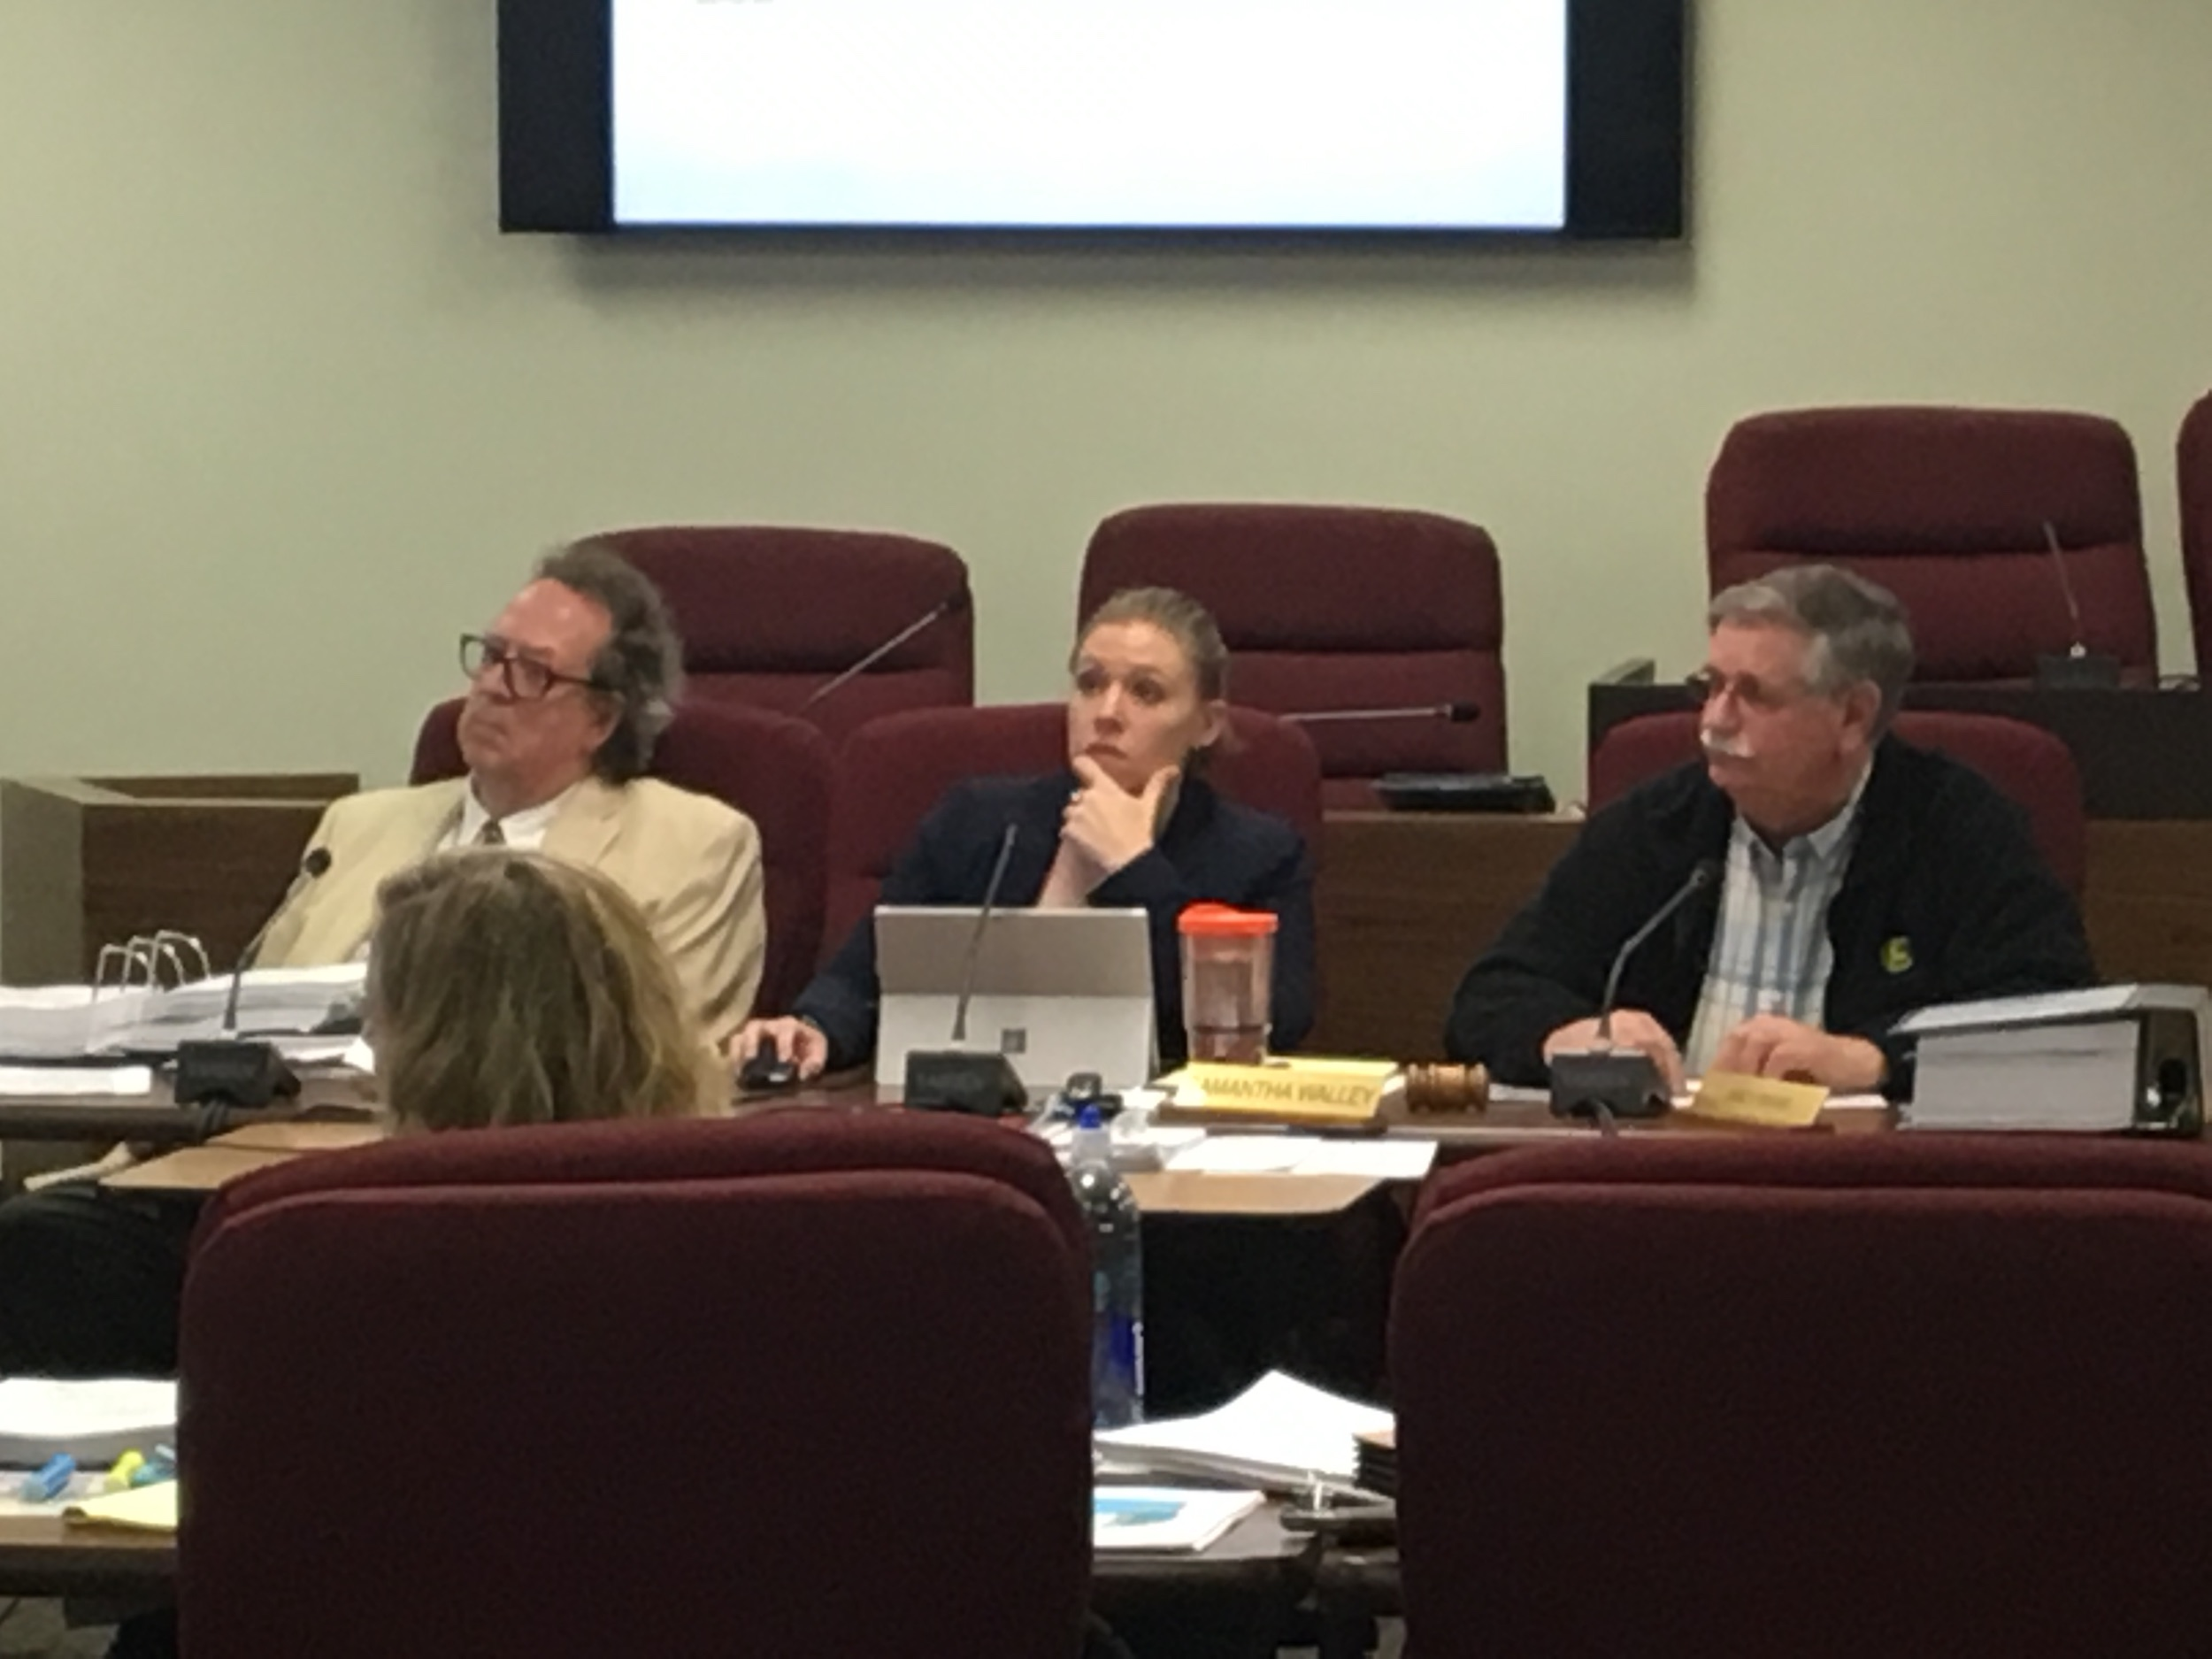 The McLean County Zoning Board of Appeals heard testimony on Tuesday night regarding another proposed wind farm in northern McLean County. (Image credit: Matt Johnson)